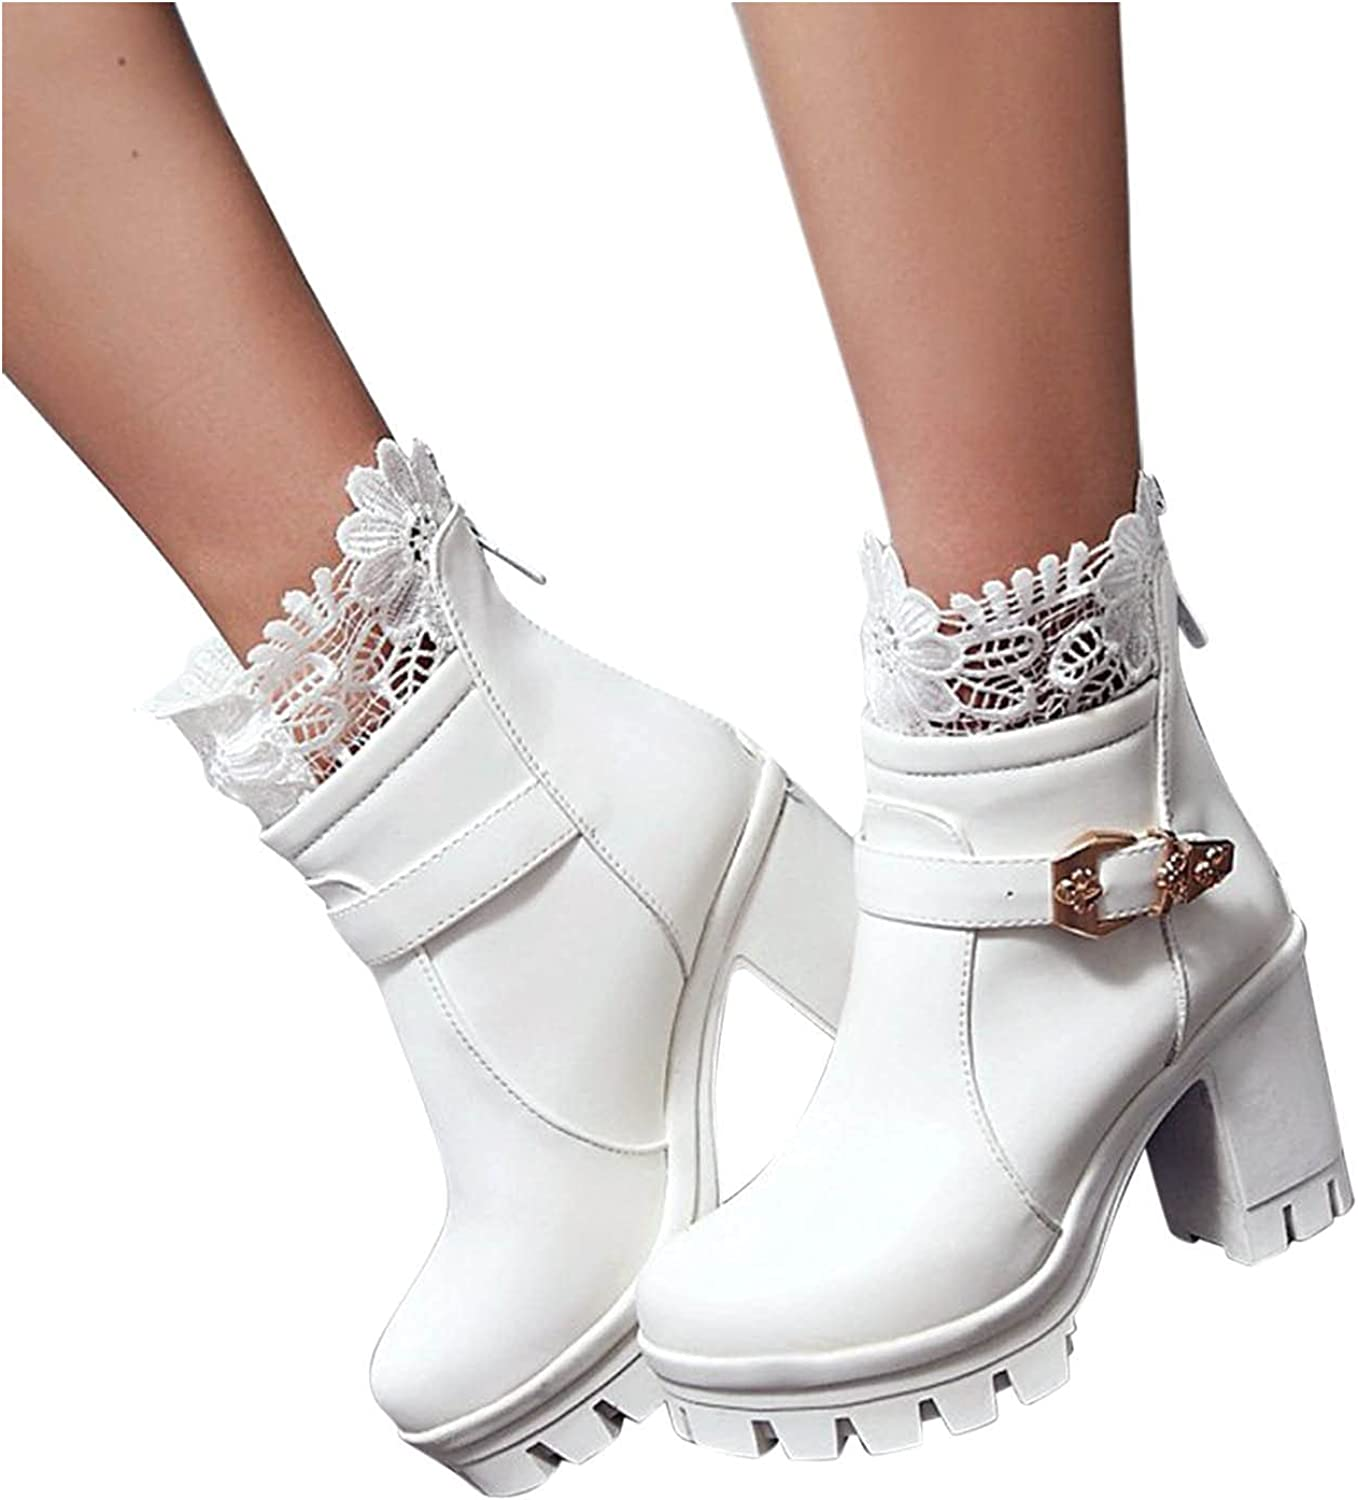 Boots for Women with Washington Mall Heel Platform Lace Booties Selling and selling Zipp Ankle